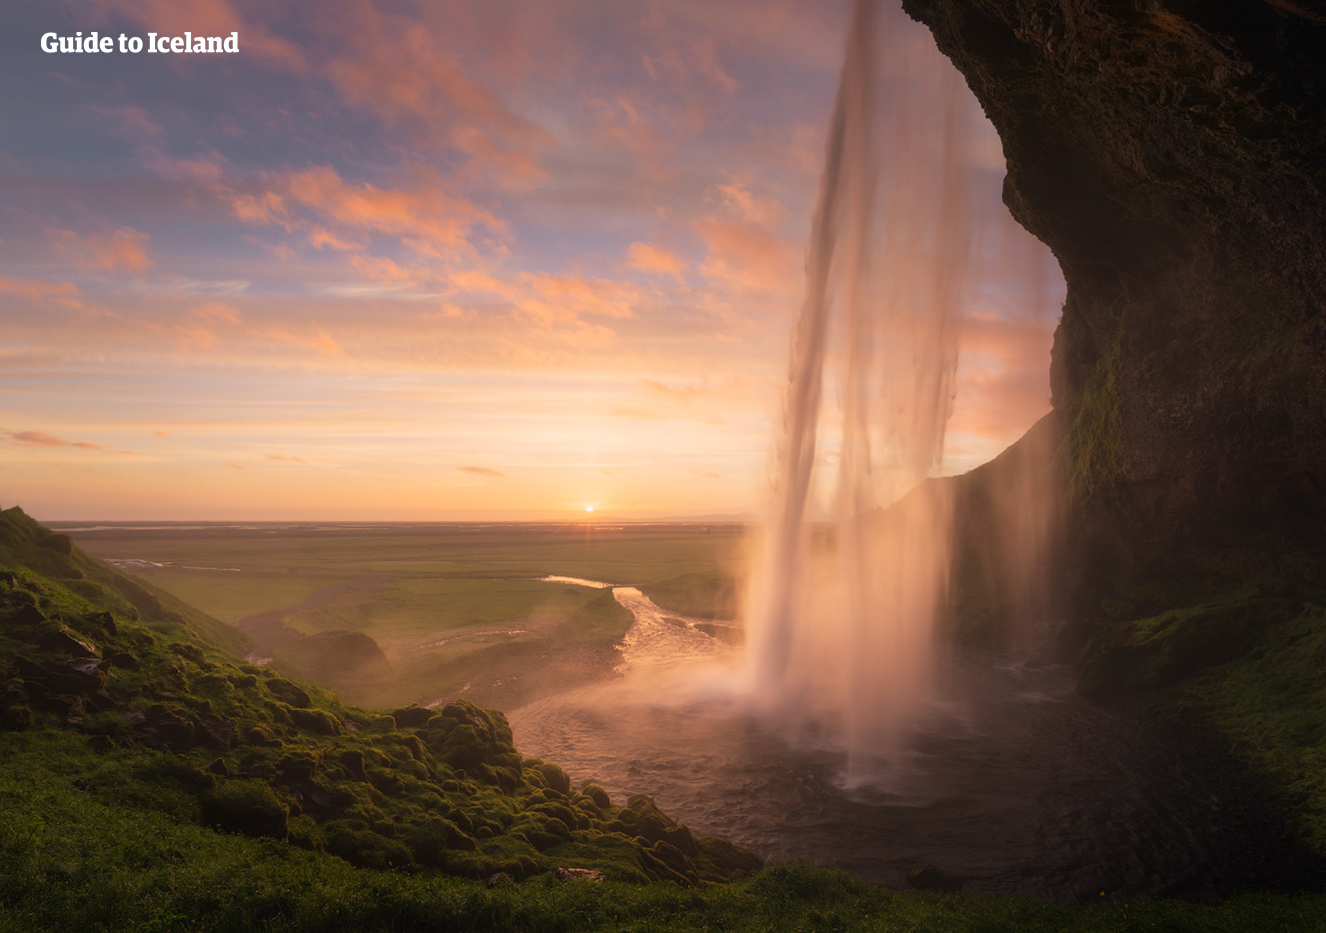 Seljalandsfoss Waterfall painted gold by the midnight sun of summer in South Iceland.